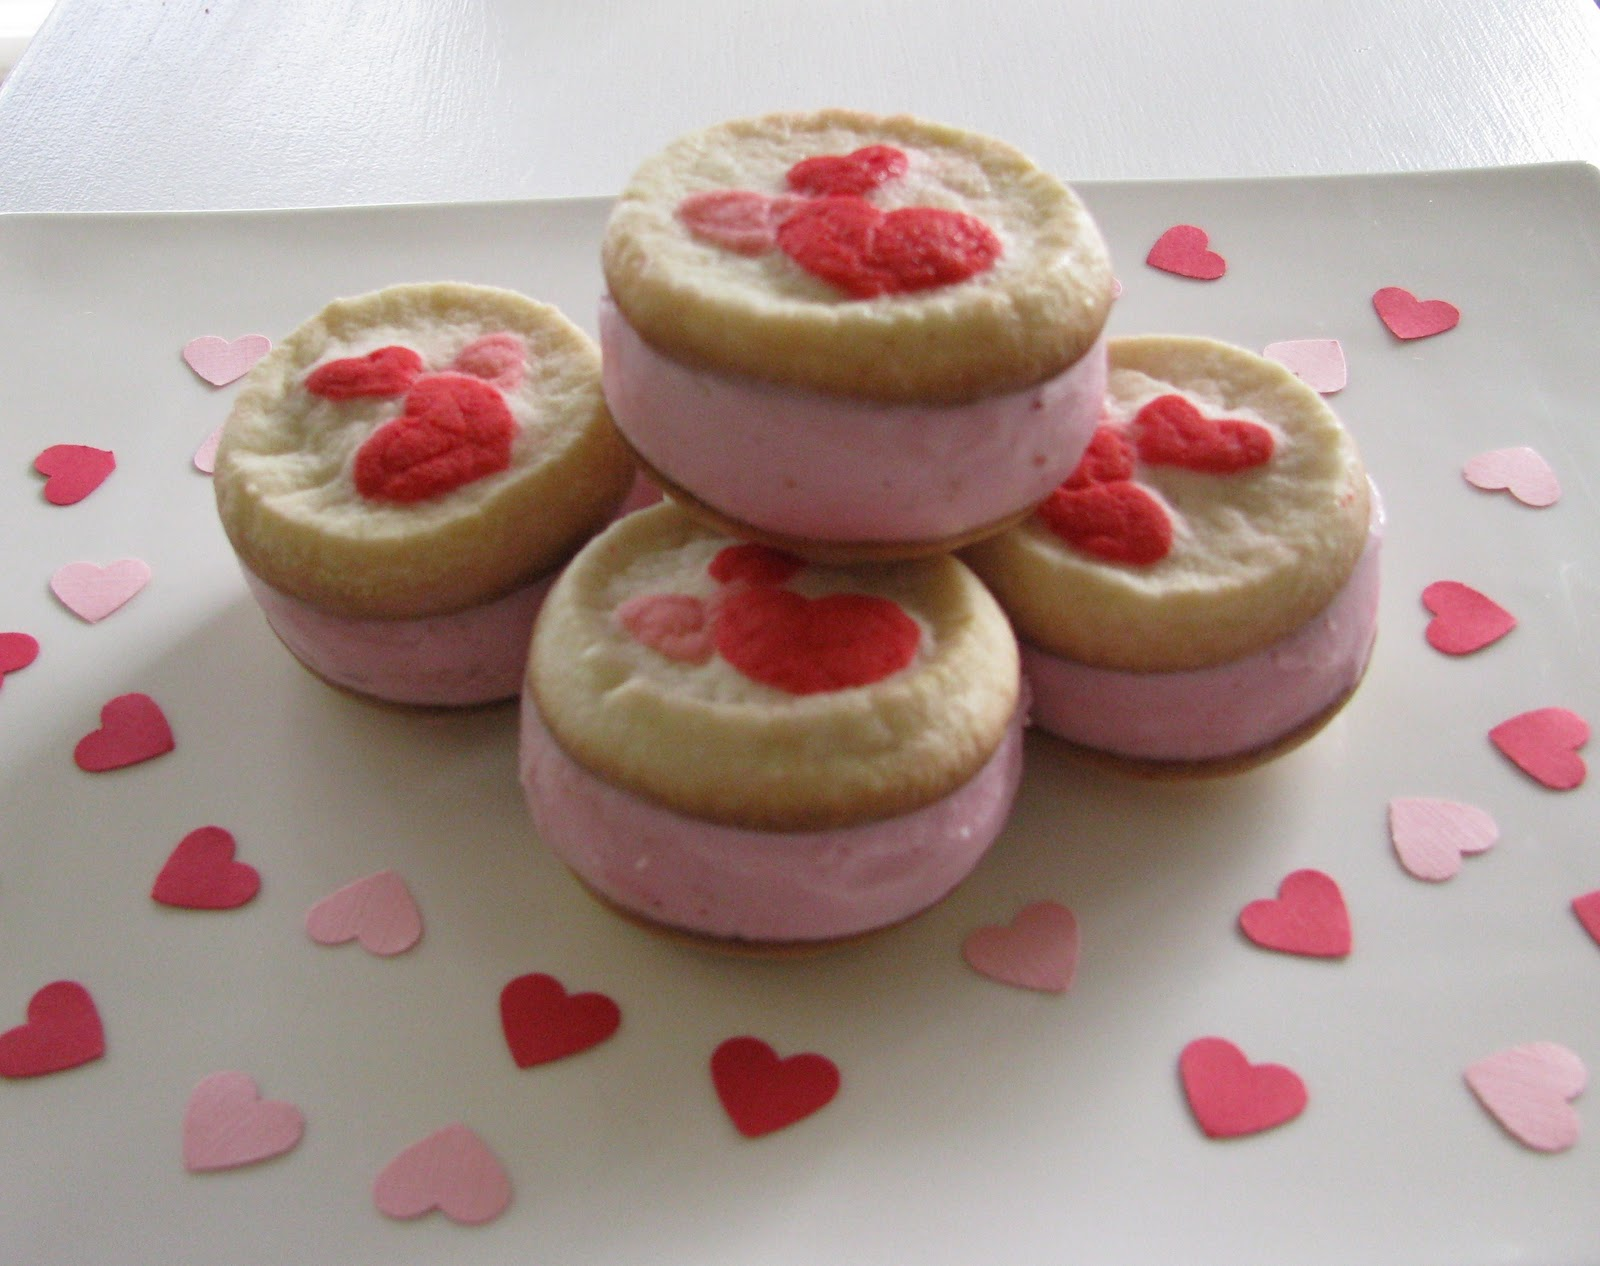 Sheek Shindigs: Easy Valentine's Ice Cream Sandwiches